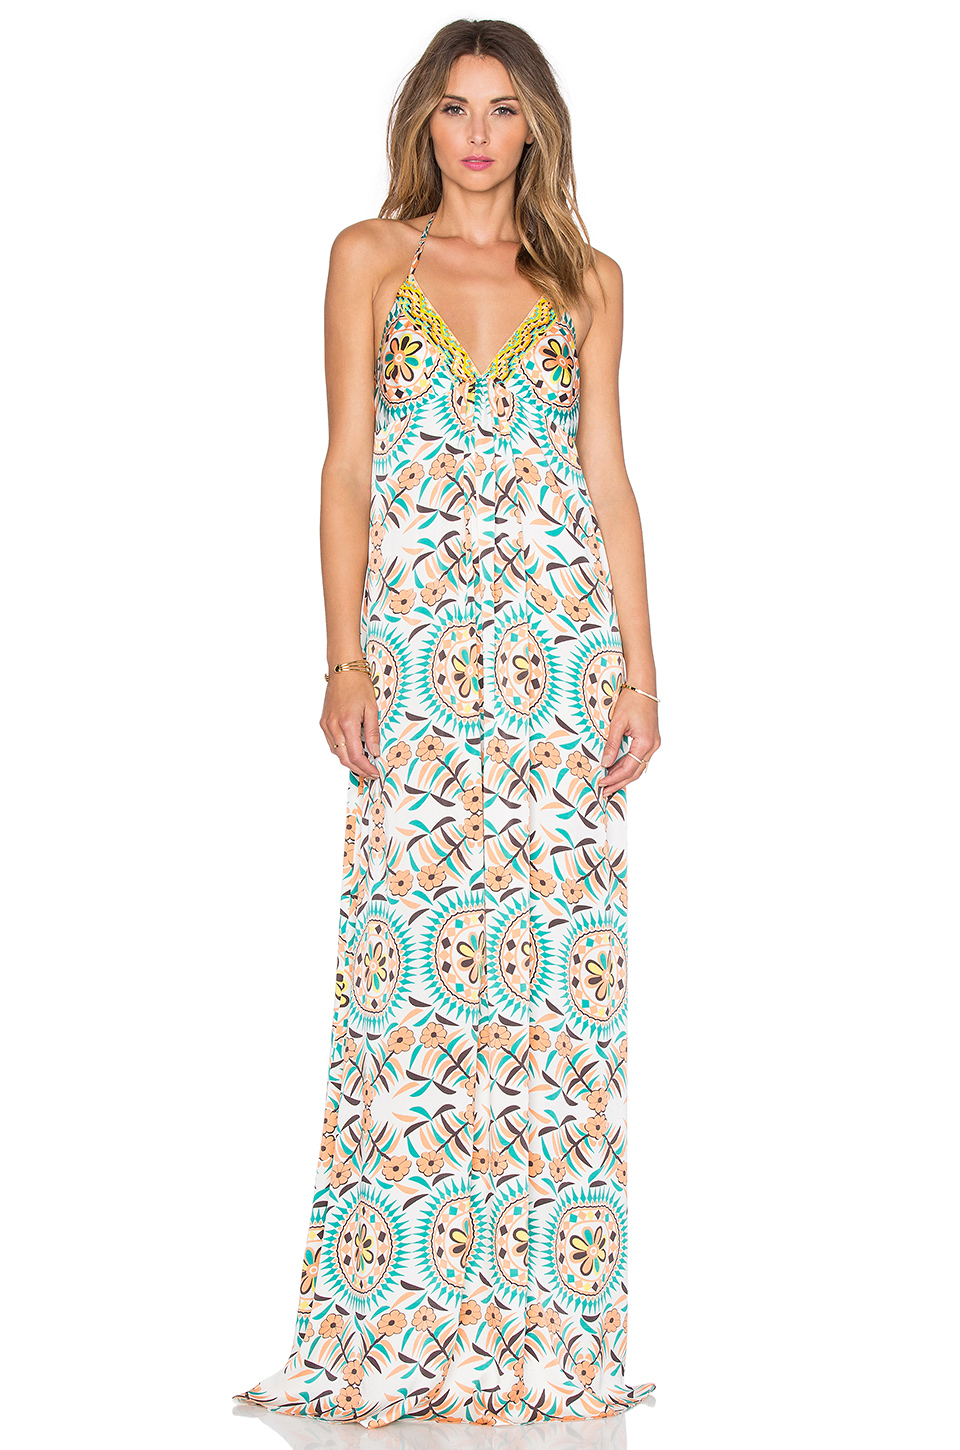 Pia pauro Patterned Maxi Dress in Blue | Lyst